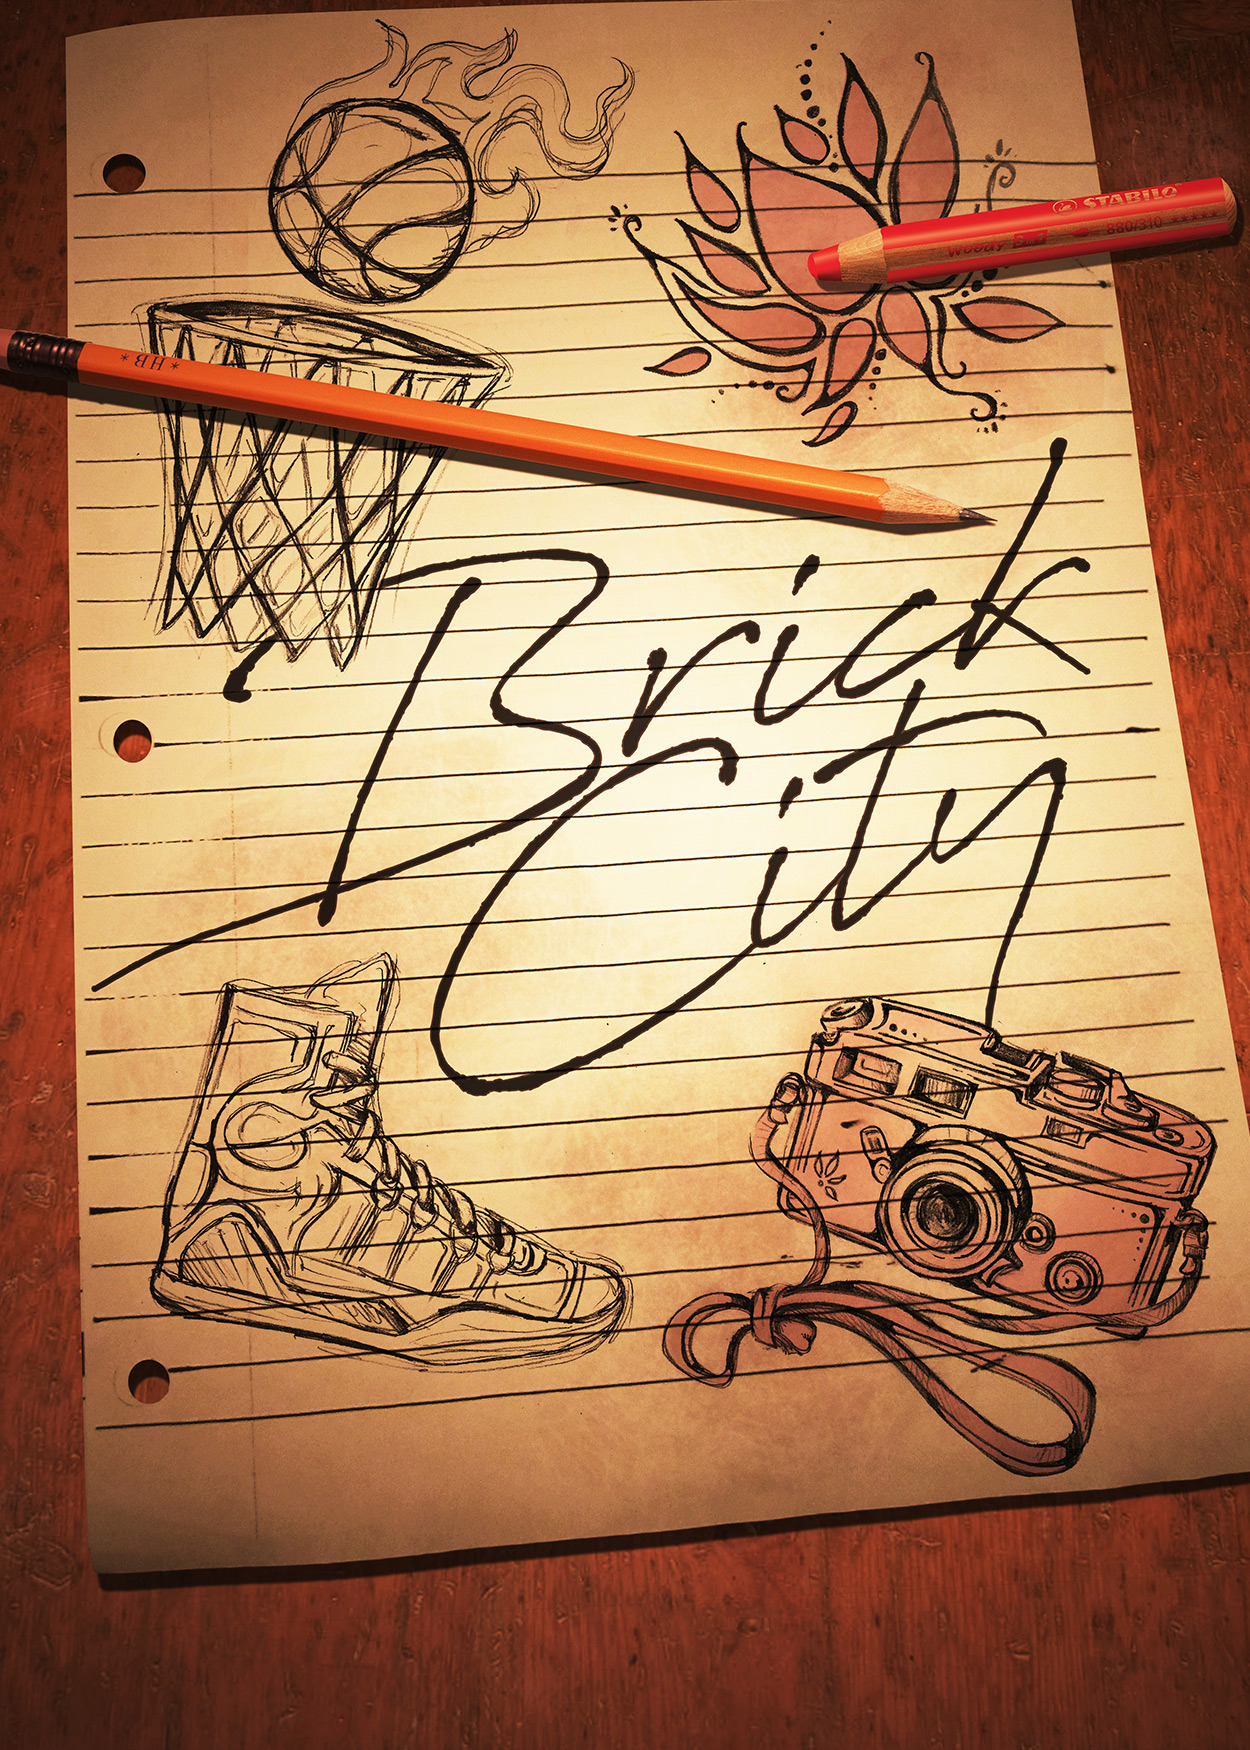 Key Art from Brick City (2018). An image of a sheet of lined notebook paper. Drawn in pencil and color-pencil are image of a basketball gooing into a net, a sneaker, a camera and a flower.